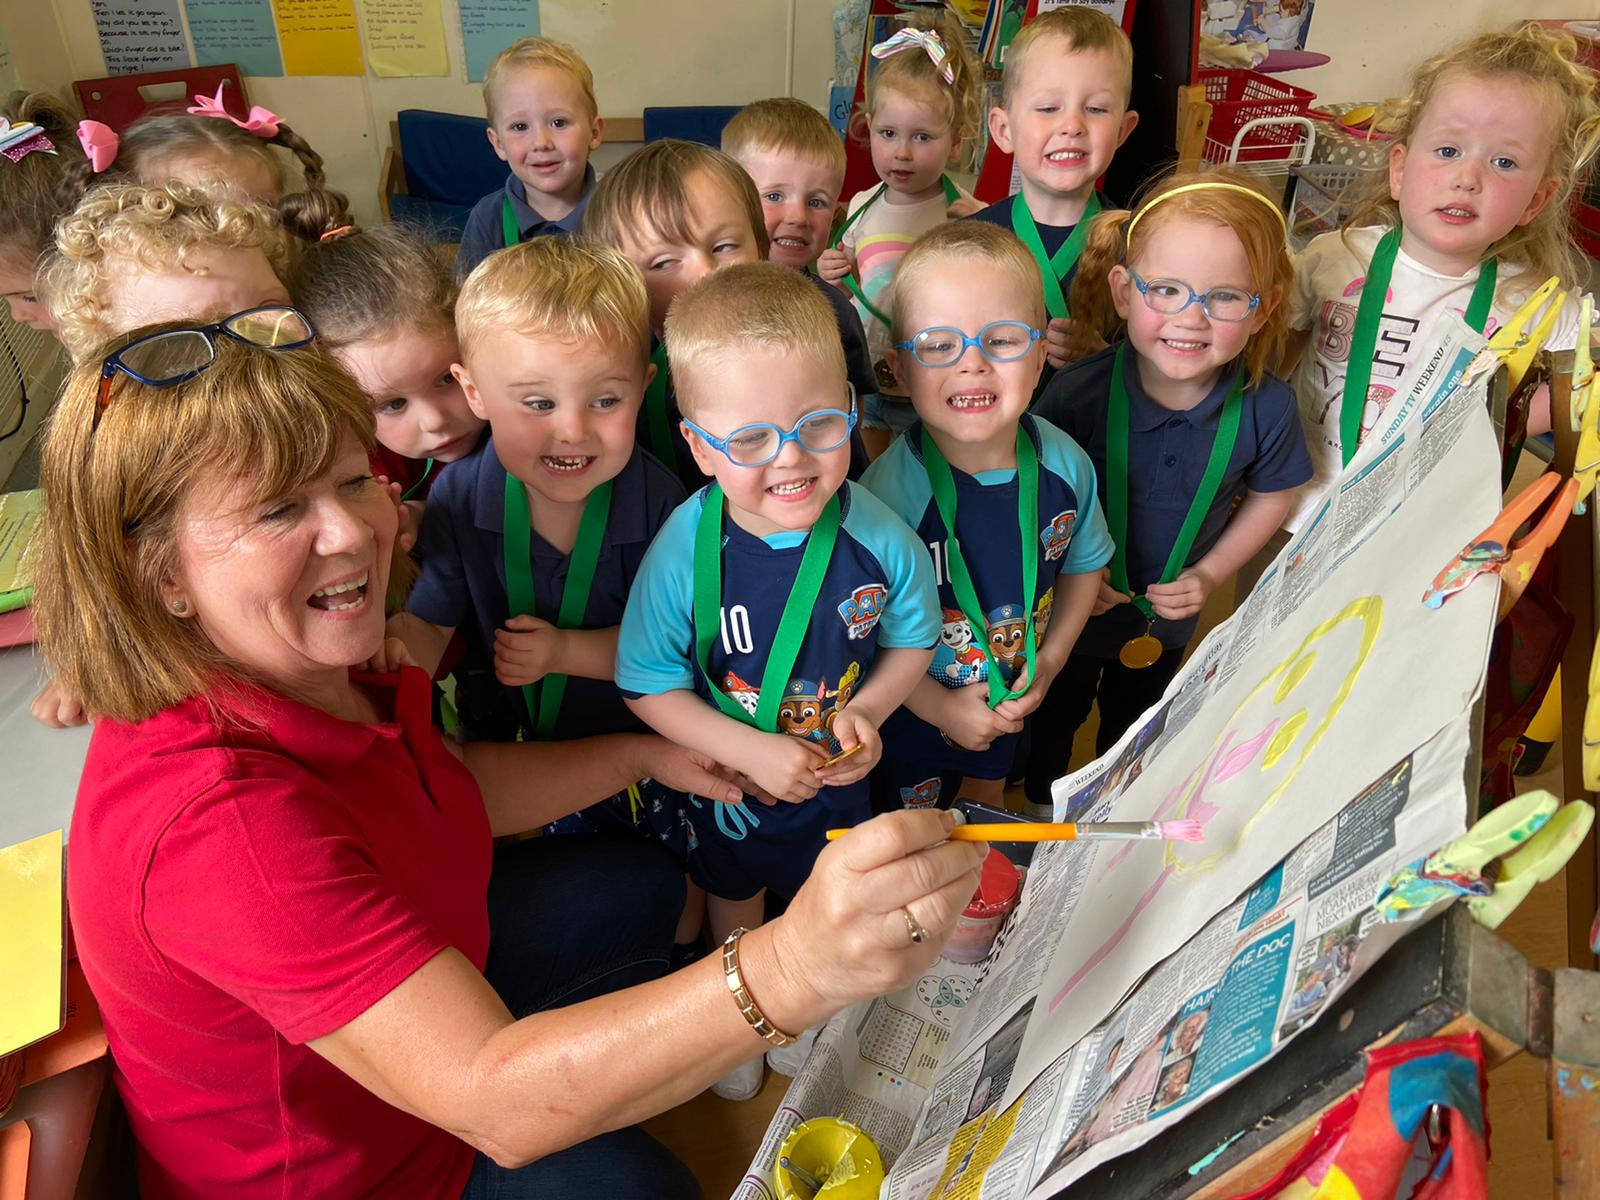 END OF AN ERA: Principal Annmarie Toner has hung up her paintbrush and waved goodbye to the children for the final time as she retires and the playgroup closes